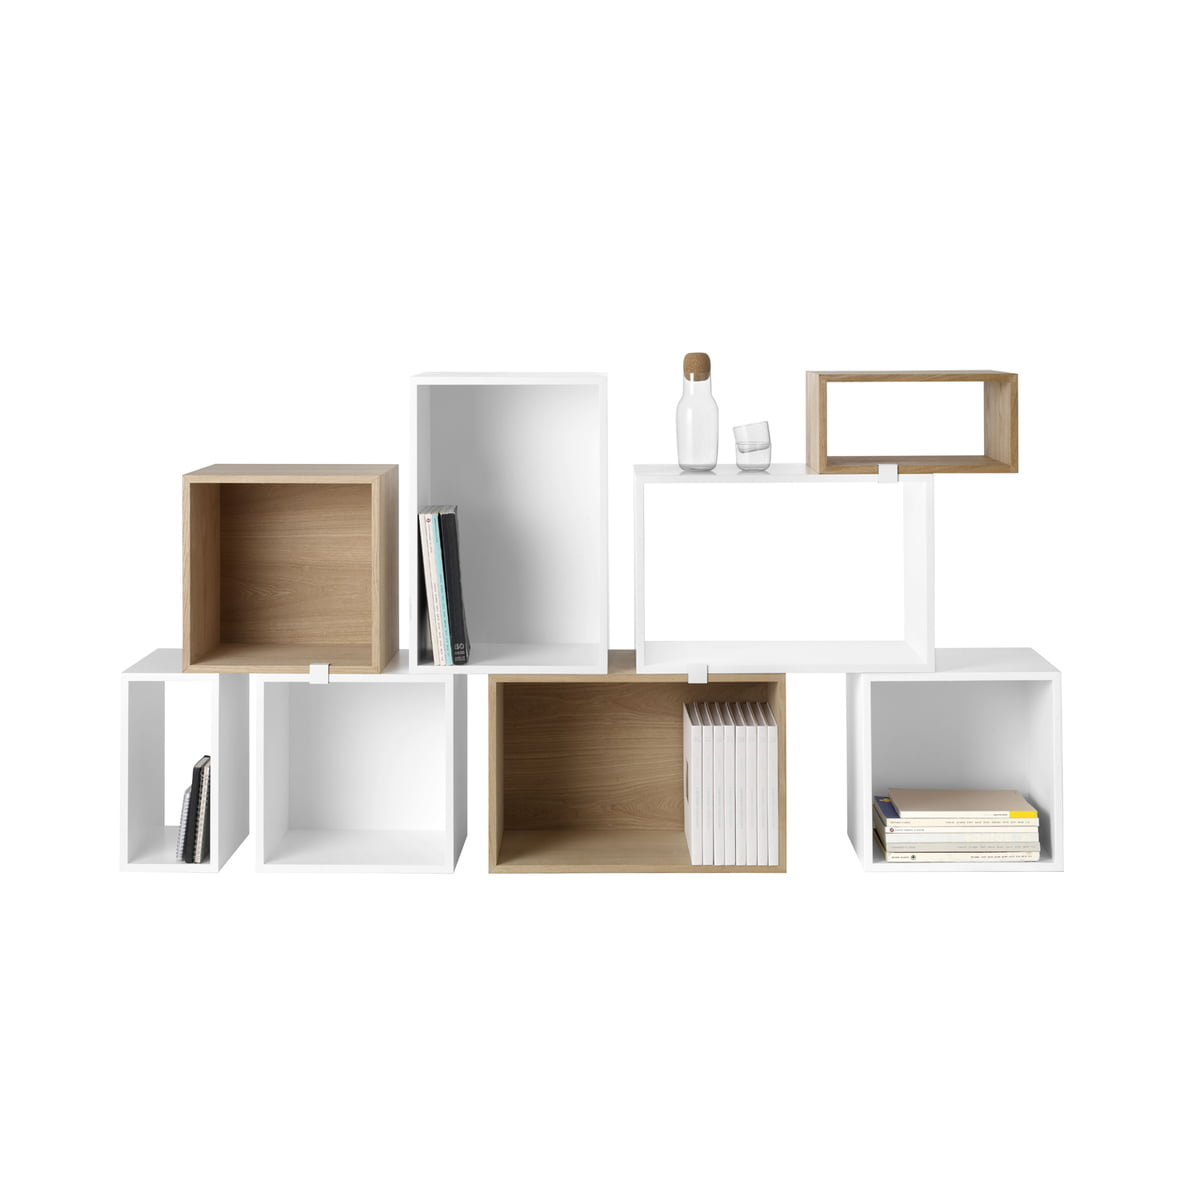 mini stacked shelving system by muuto. Black Bedroom Furniture Sets. Home Design Ideas